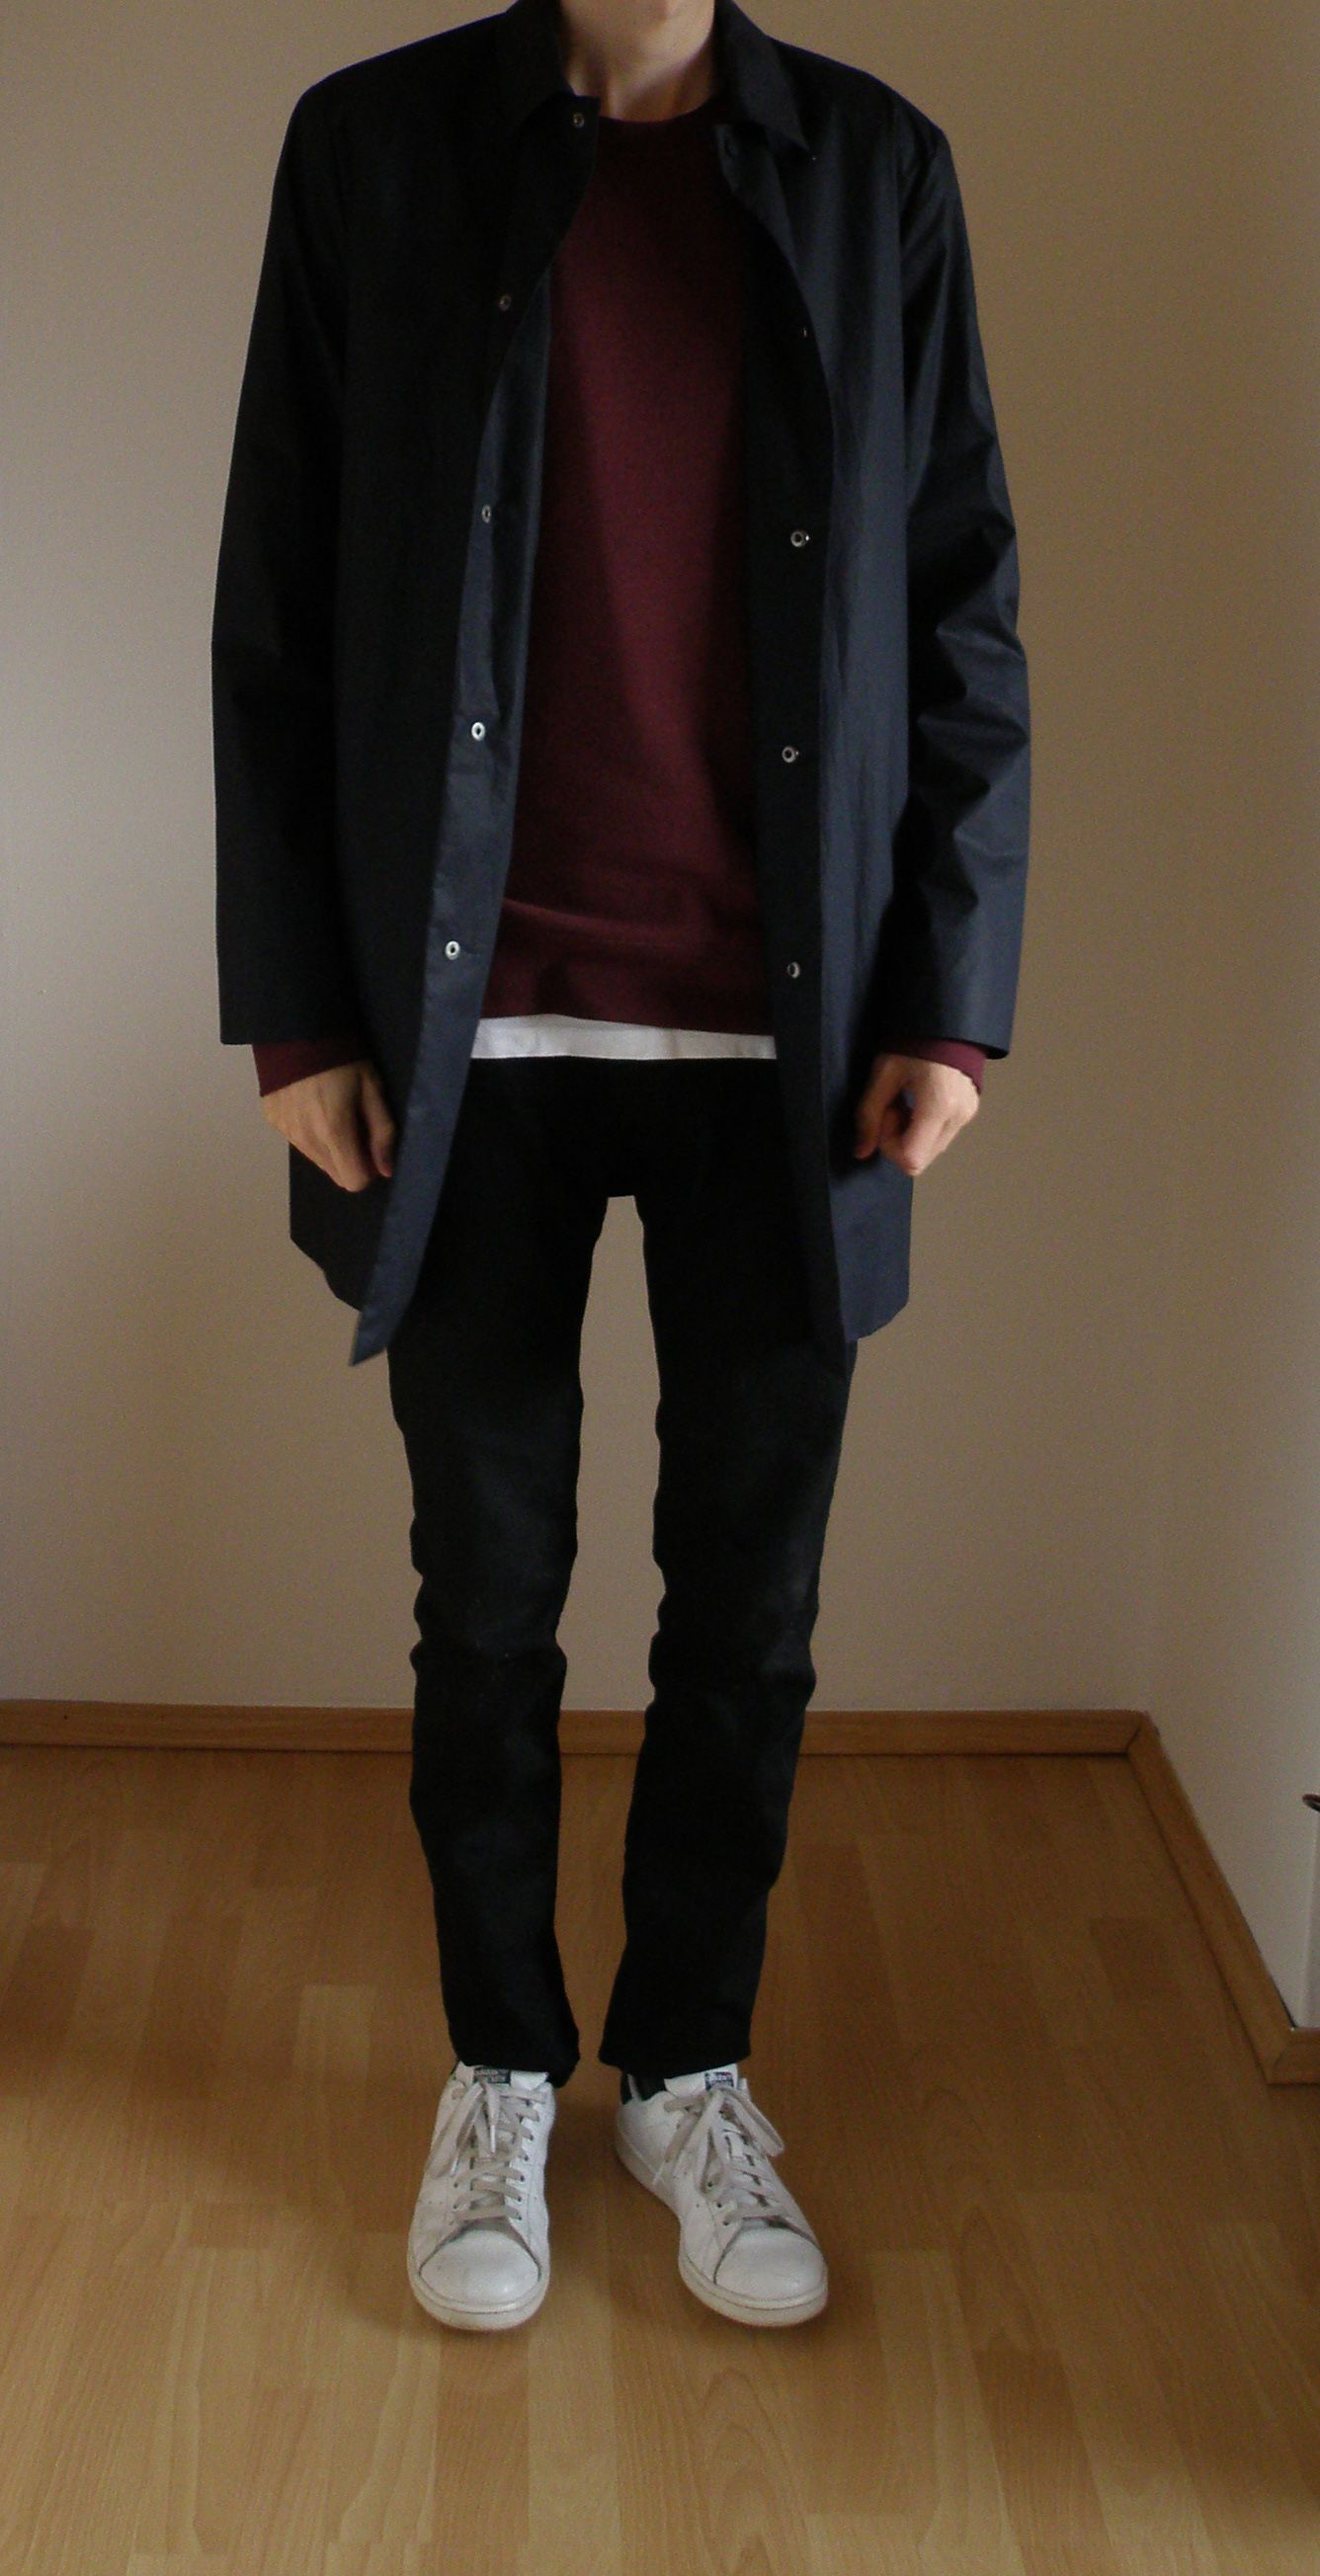 cos hm acne adidas strong passion high fashion pinterest adidas and comment